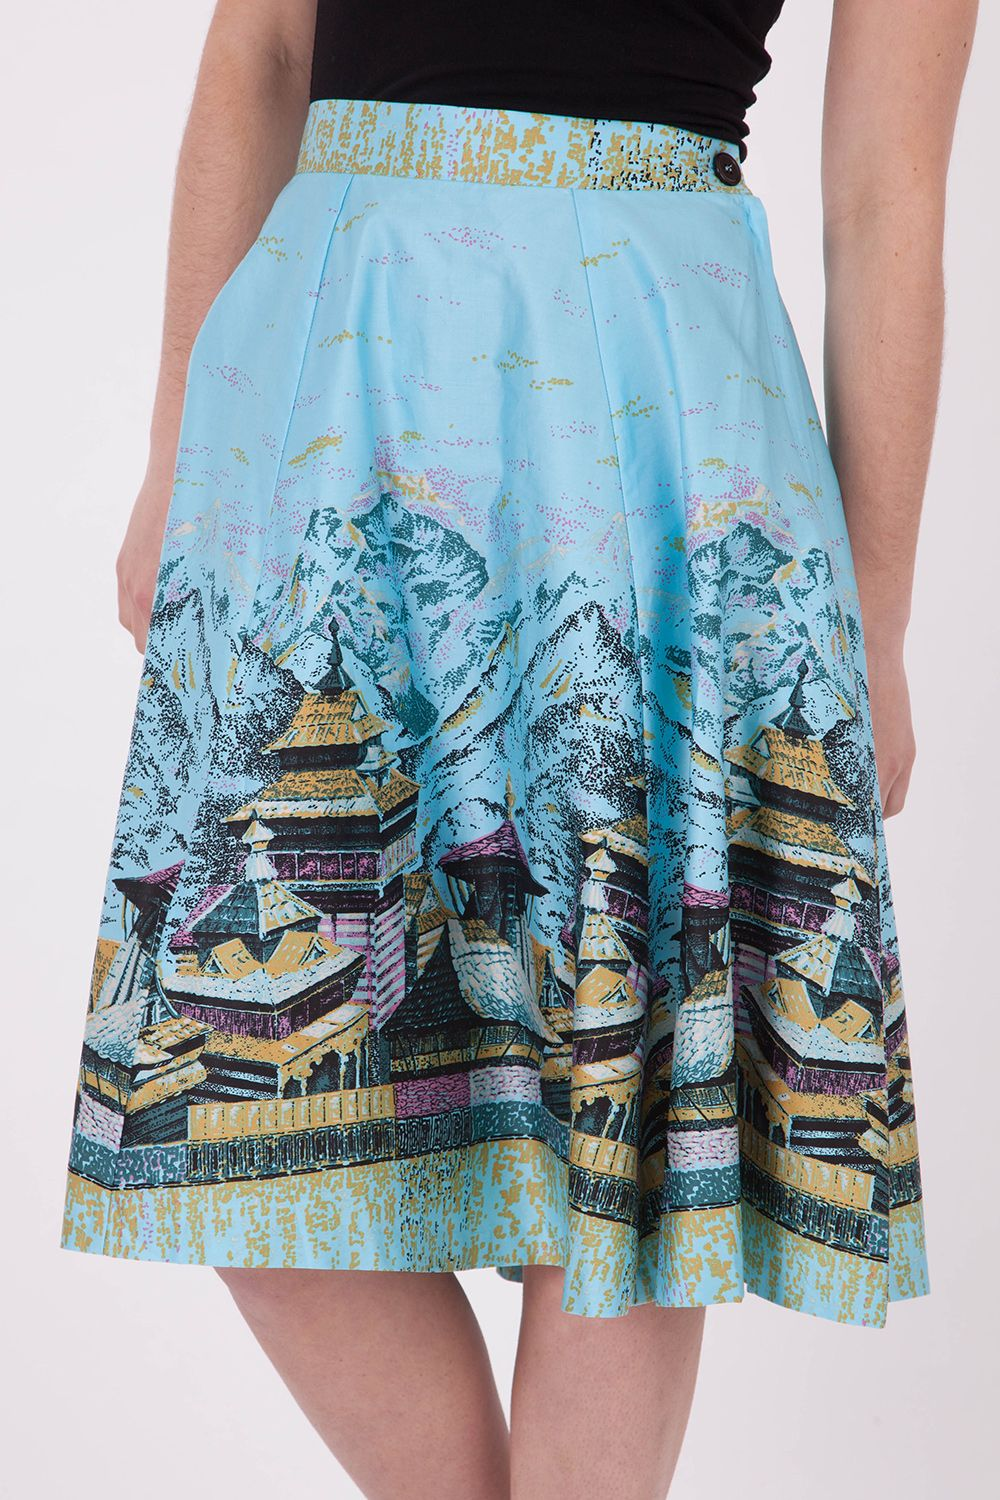 df905944fe0 RetroSpec d Robyn Oriental Tea House Skirt - Womens Knee Length Skirts at  Birdsnest